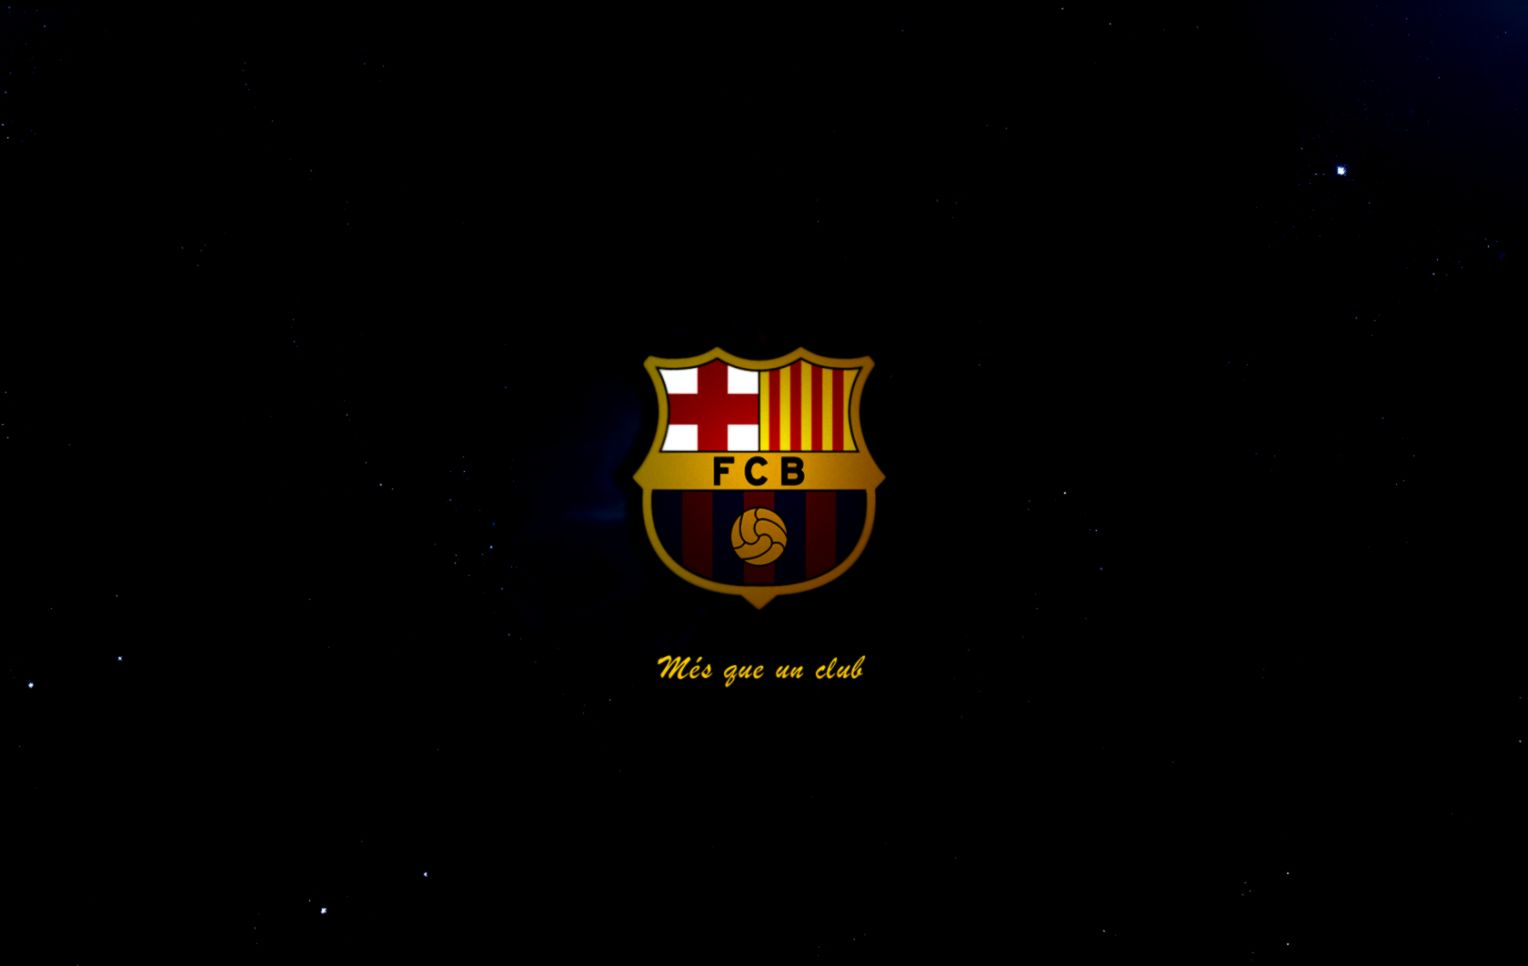 Fc Barcelona Wallpapers | Best Wallpaper HD